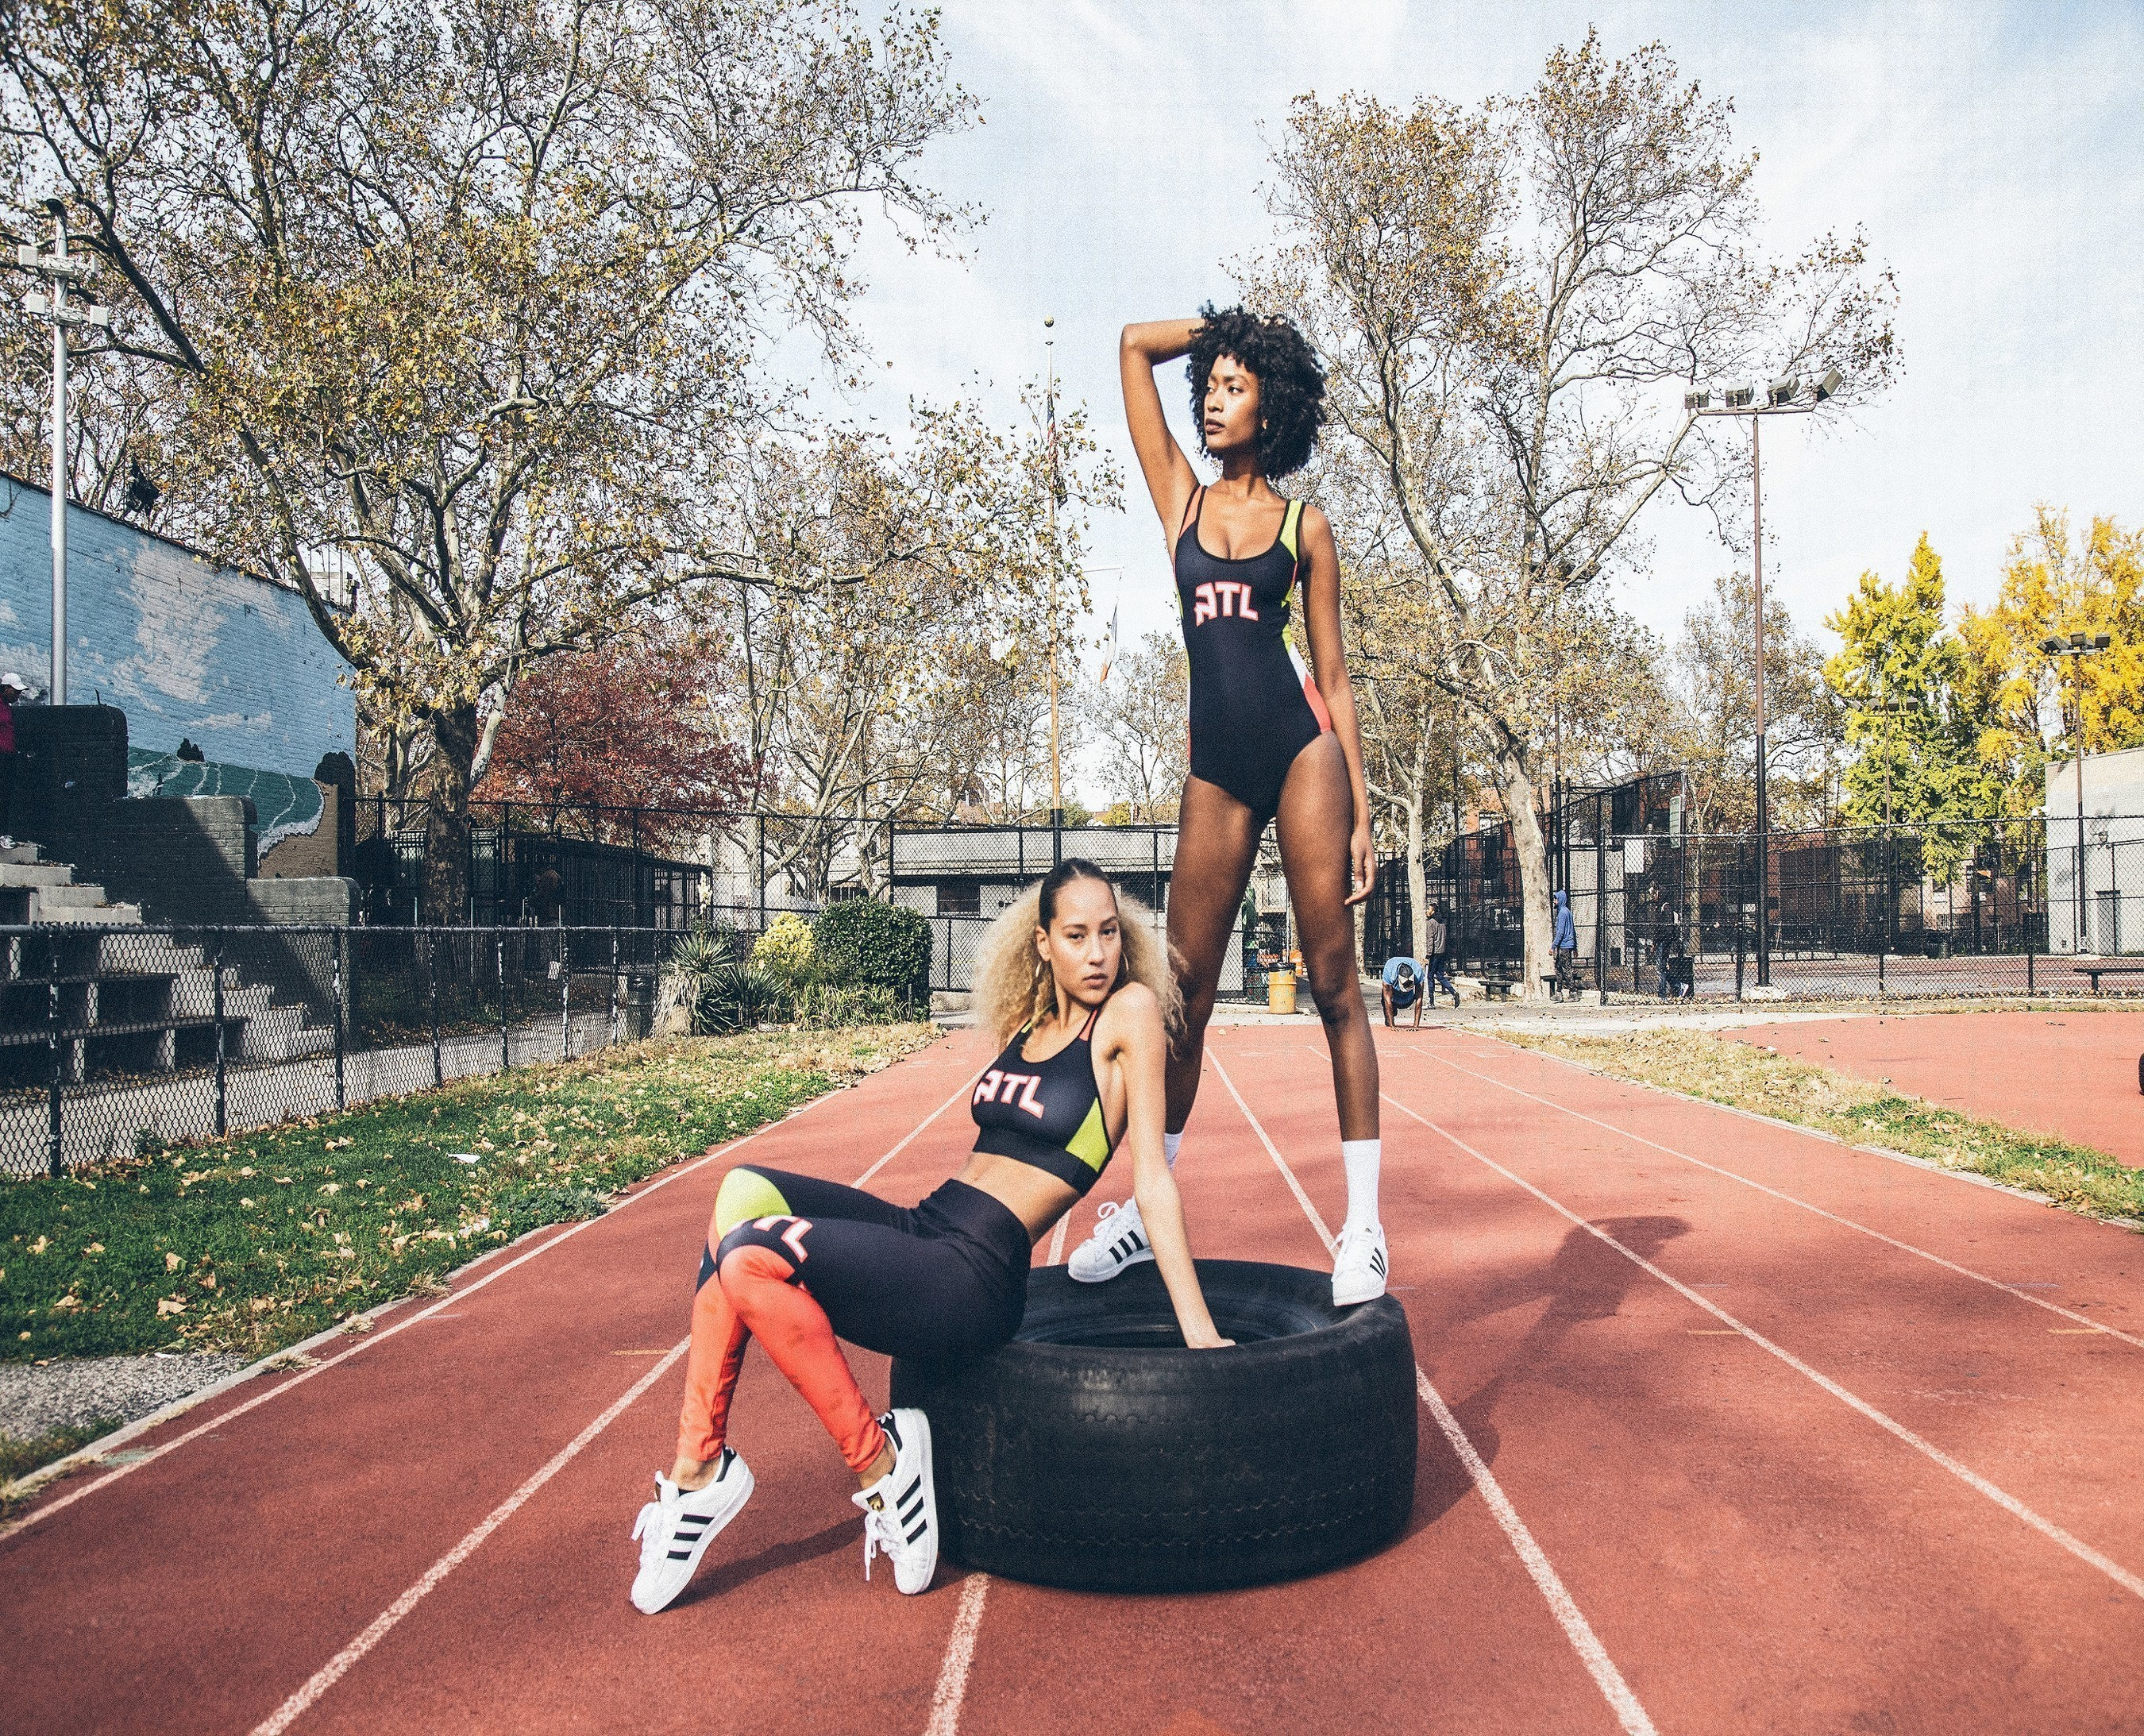 Lime-A-Rita Partners with the Atlanta Hawks to Launch Exclusive Fashion Collection